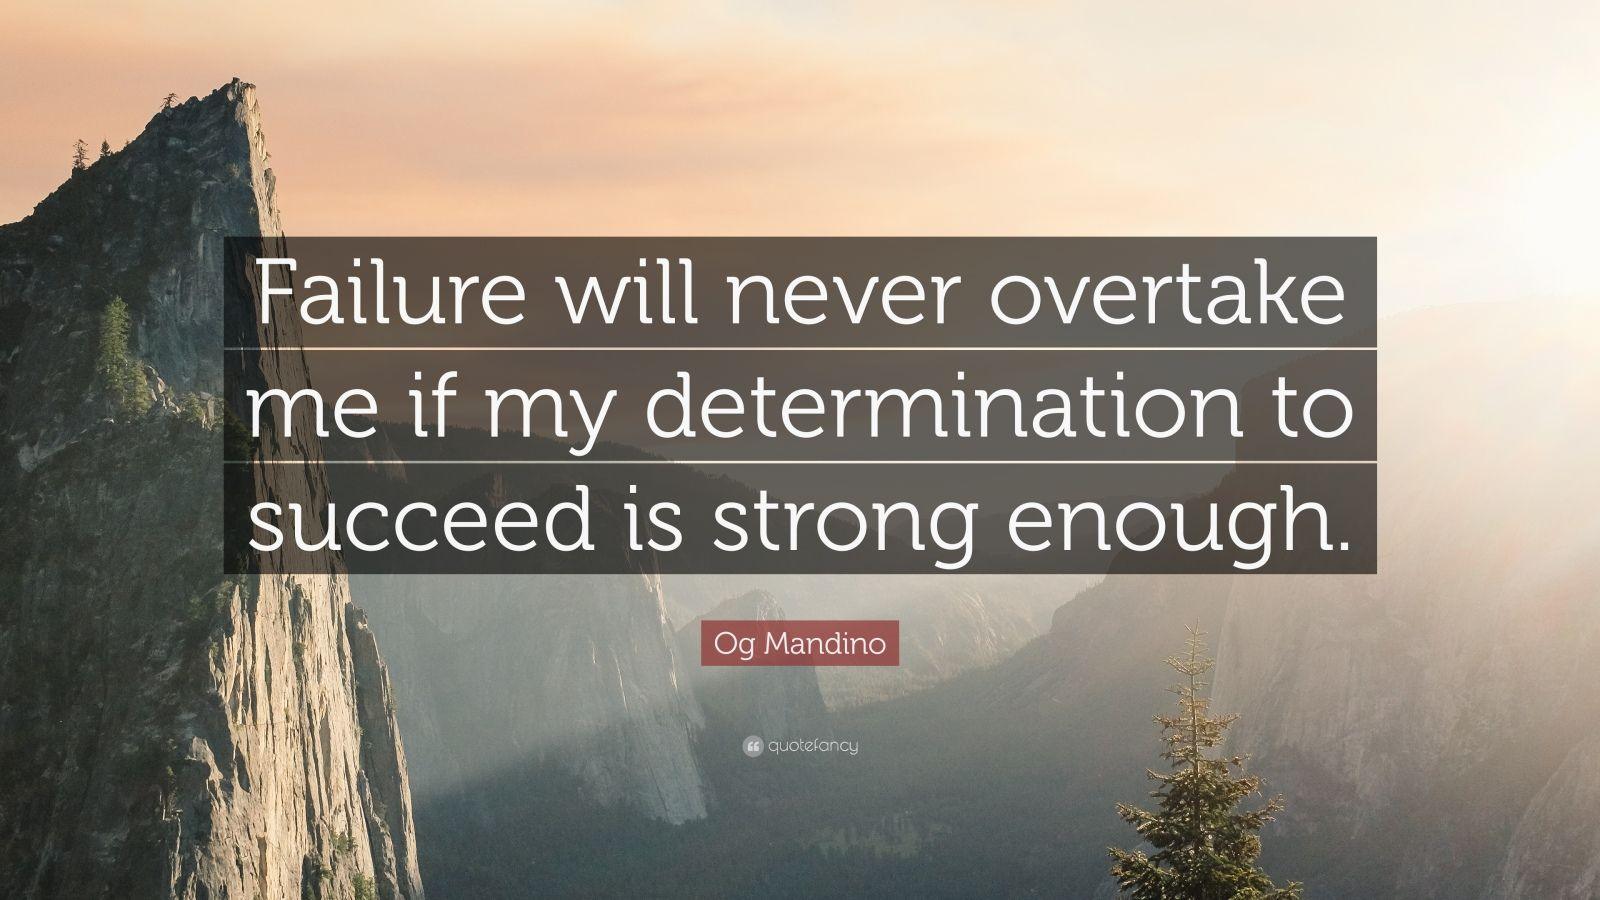 Life Beautiful Quotes Wallpapers Og Mandino Quote Failure Will Never Overtake Me If My